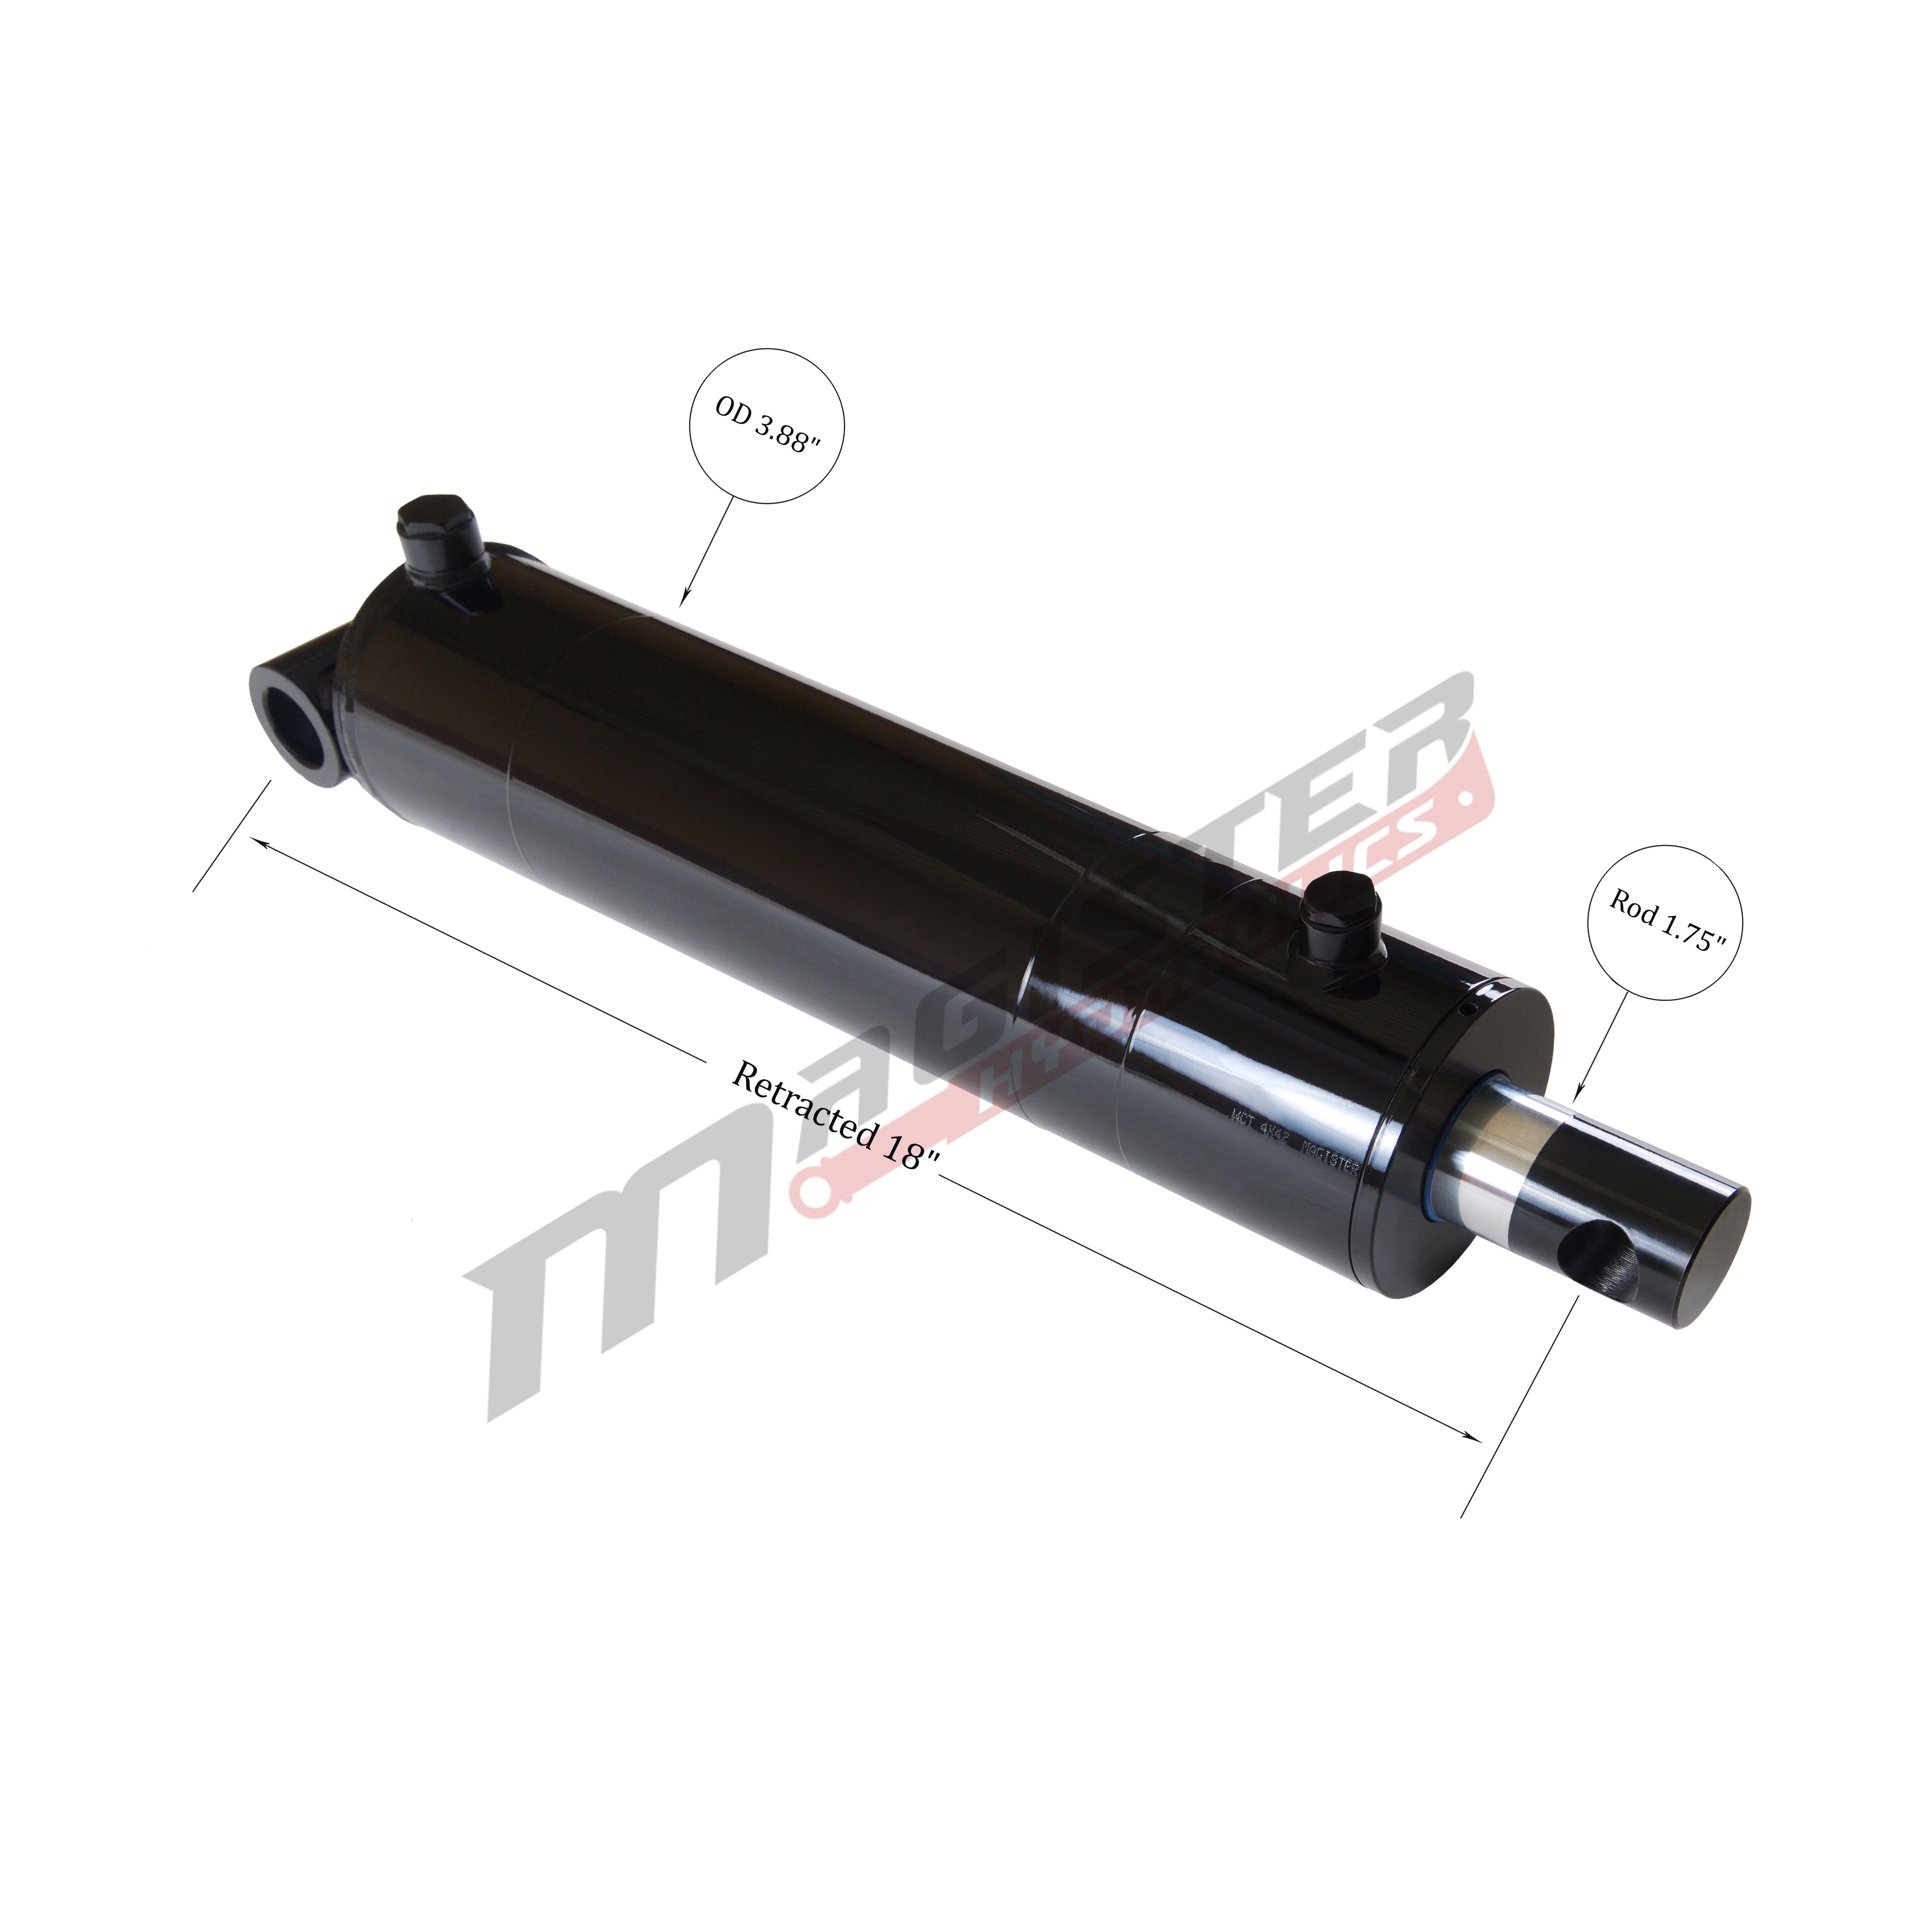 3.5 bore x 10 stroke hydraulic cylinder, welded pin eye double acting cylinder | Magister Hydraulics